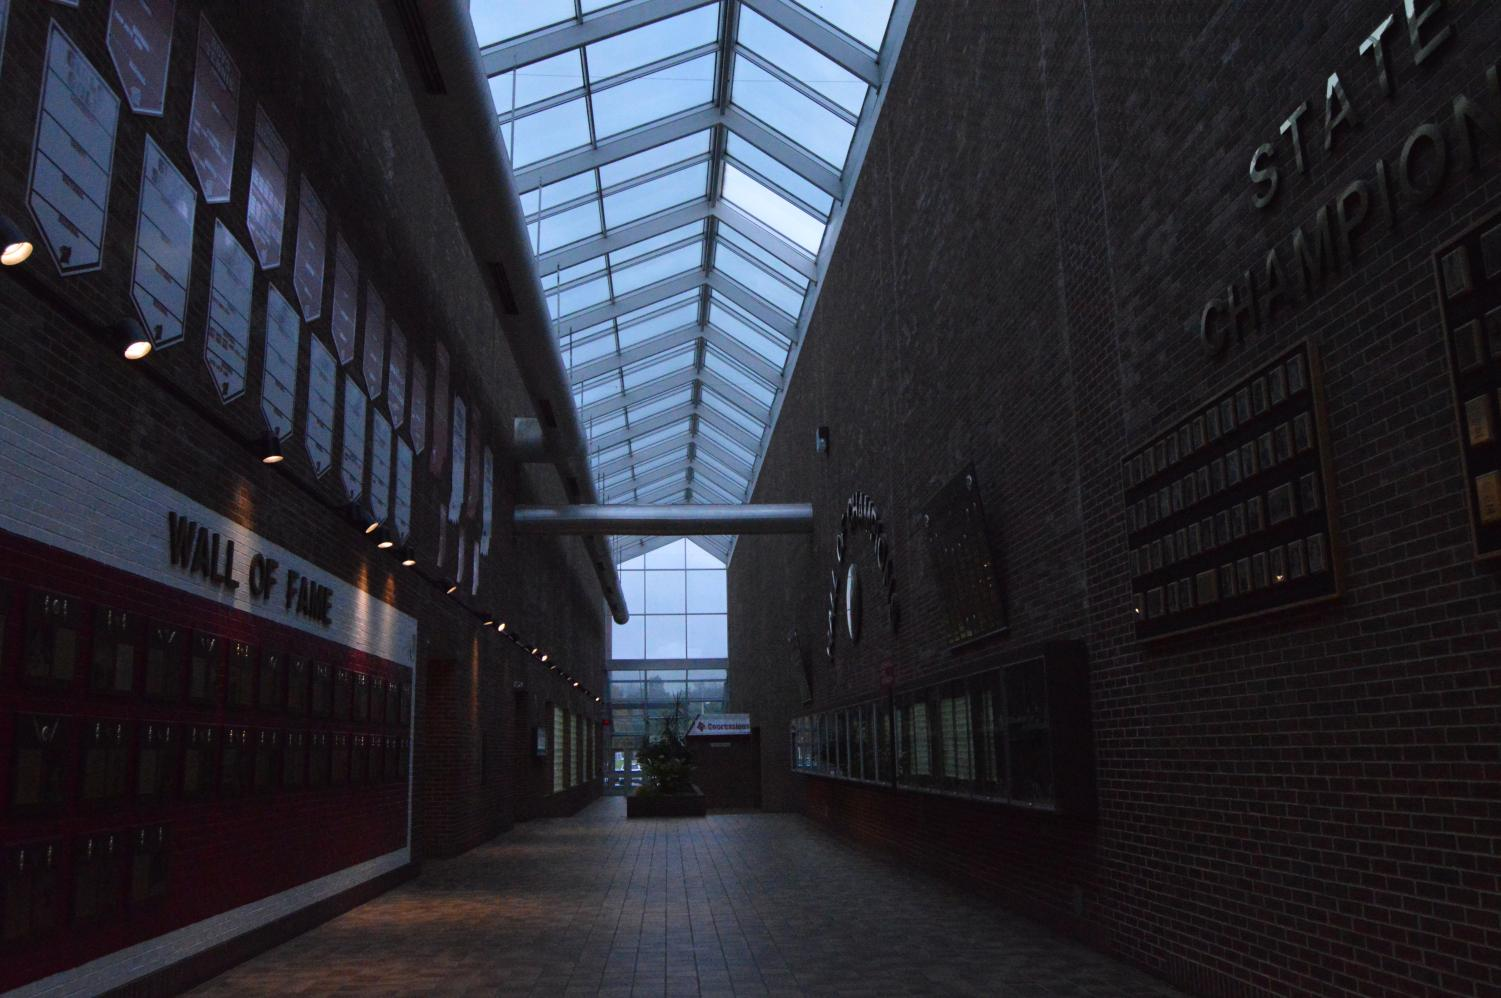 Lighting In Atrium Poses Safety Issue The Journal Rewired